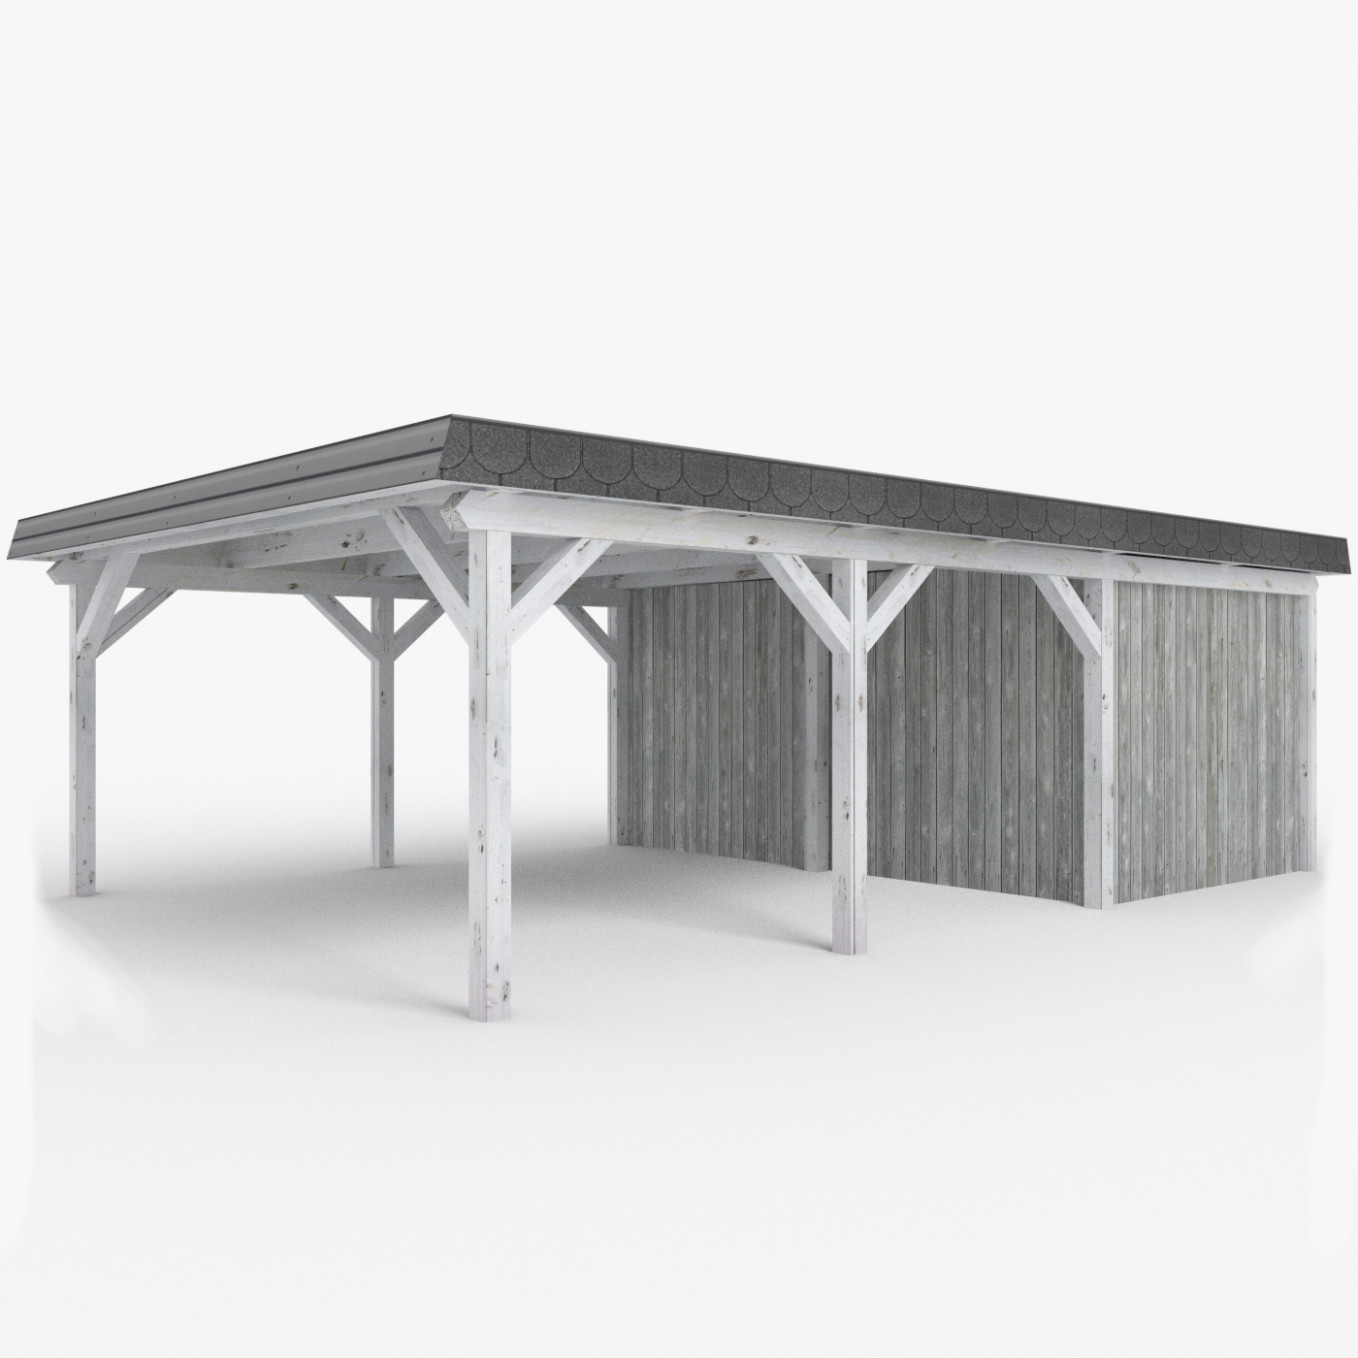 Wooden Carport with Shed (Lowpoly)